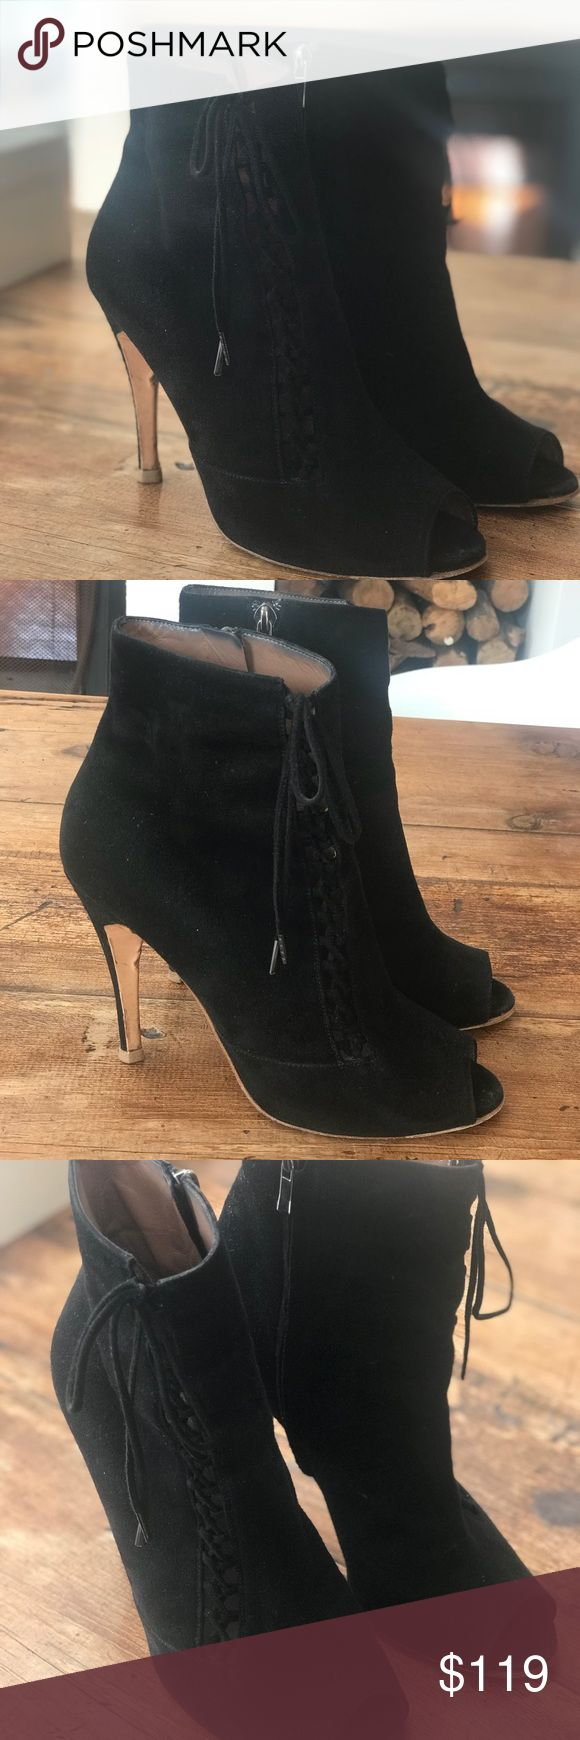 Sigerson Morrison Size 8.5 Black Highheel Boot Sigerson Morrison Designer Size 8.5 Black Highheel Boot with zipper- Suede Made In Italy - Good Condition - as is, see pictures of soles. Sigerson Morrison Shoes Heels